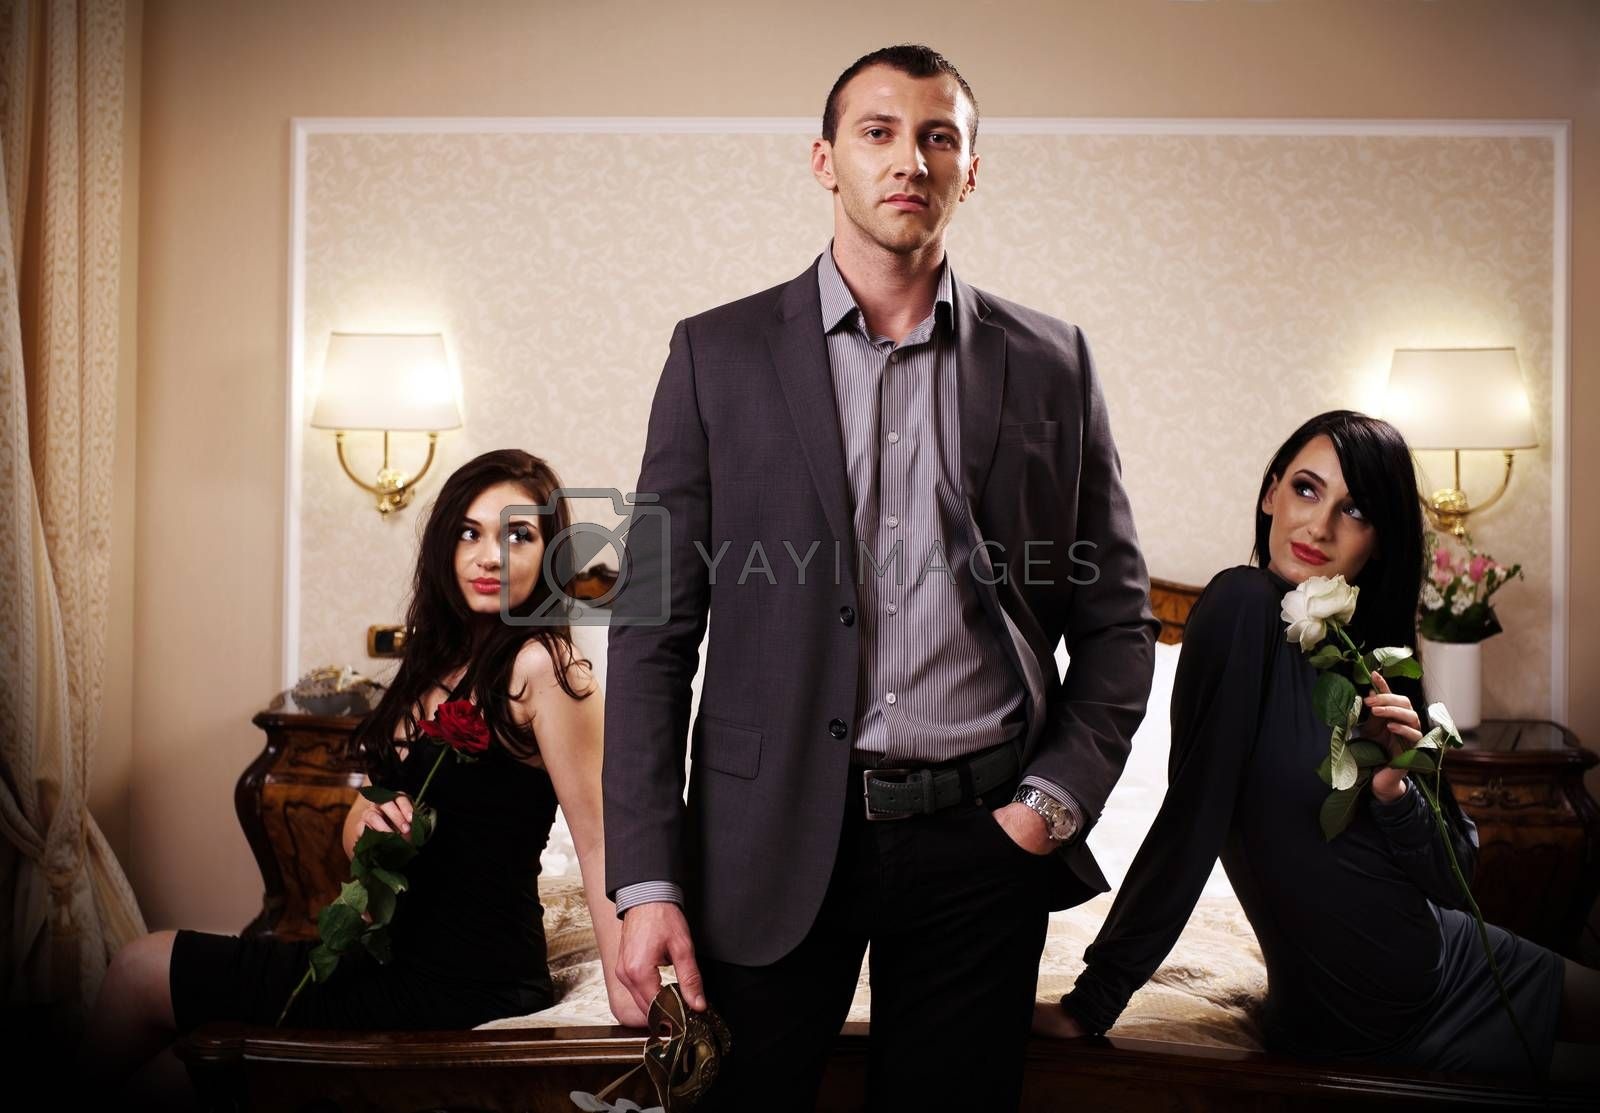 A man with a mask standing in front of two ladies. See more images from the same shoot.